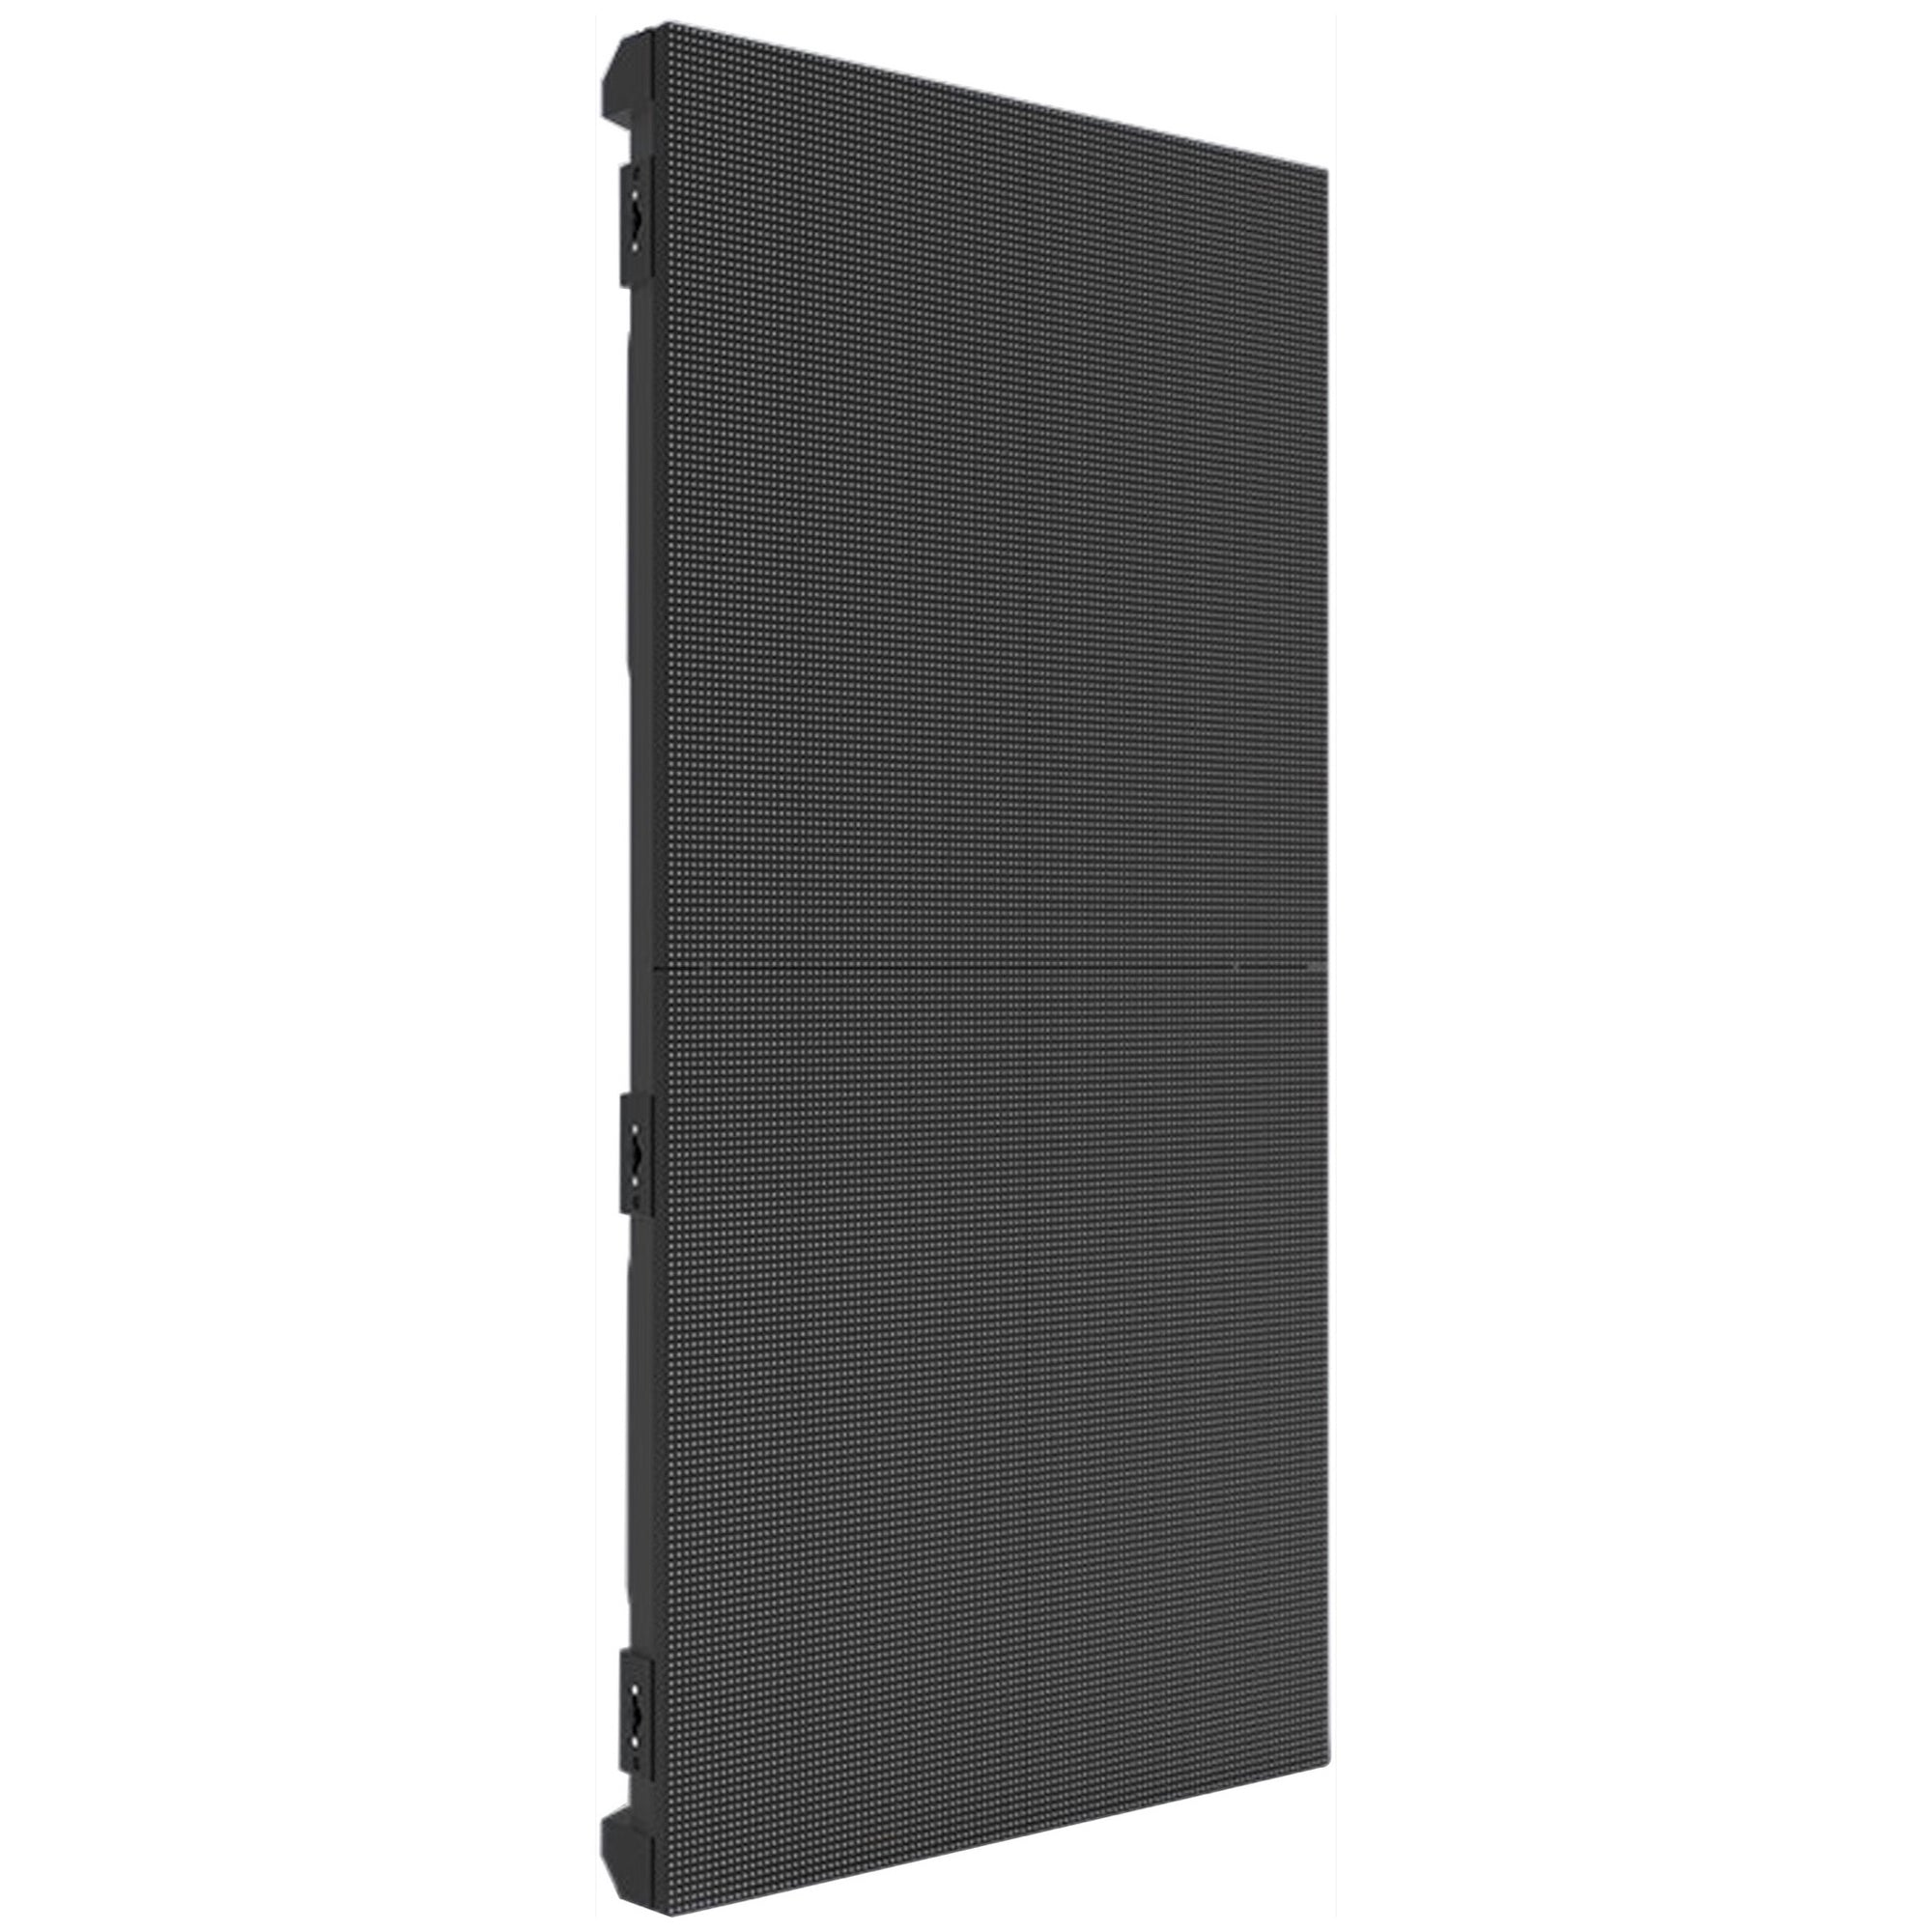 Chauvet Vivid 4x4 DJ Video Panels with Road Case